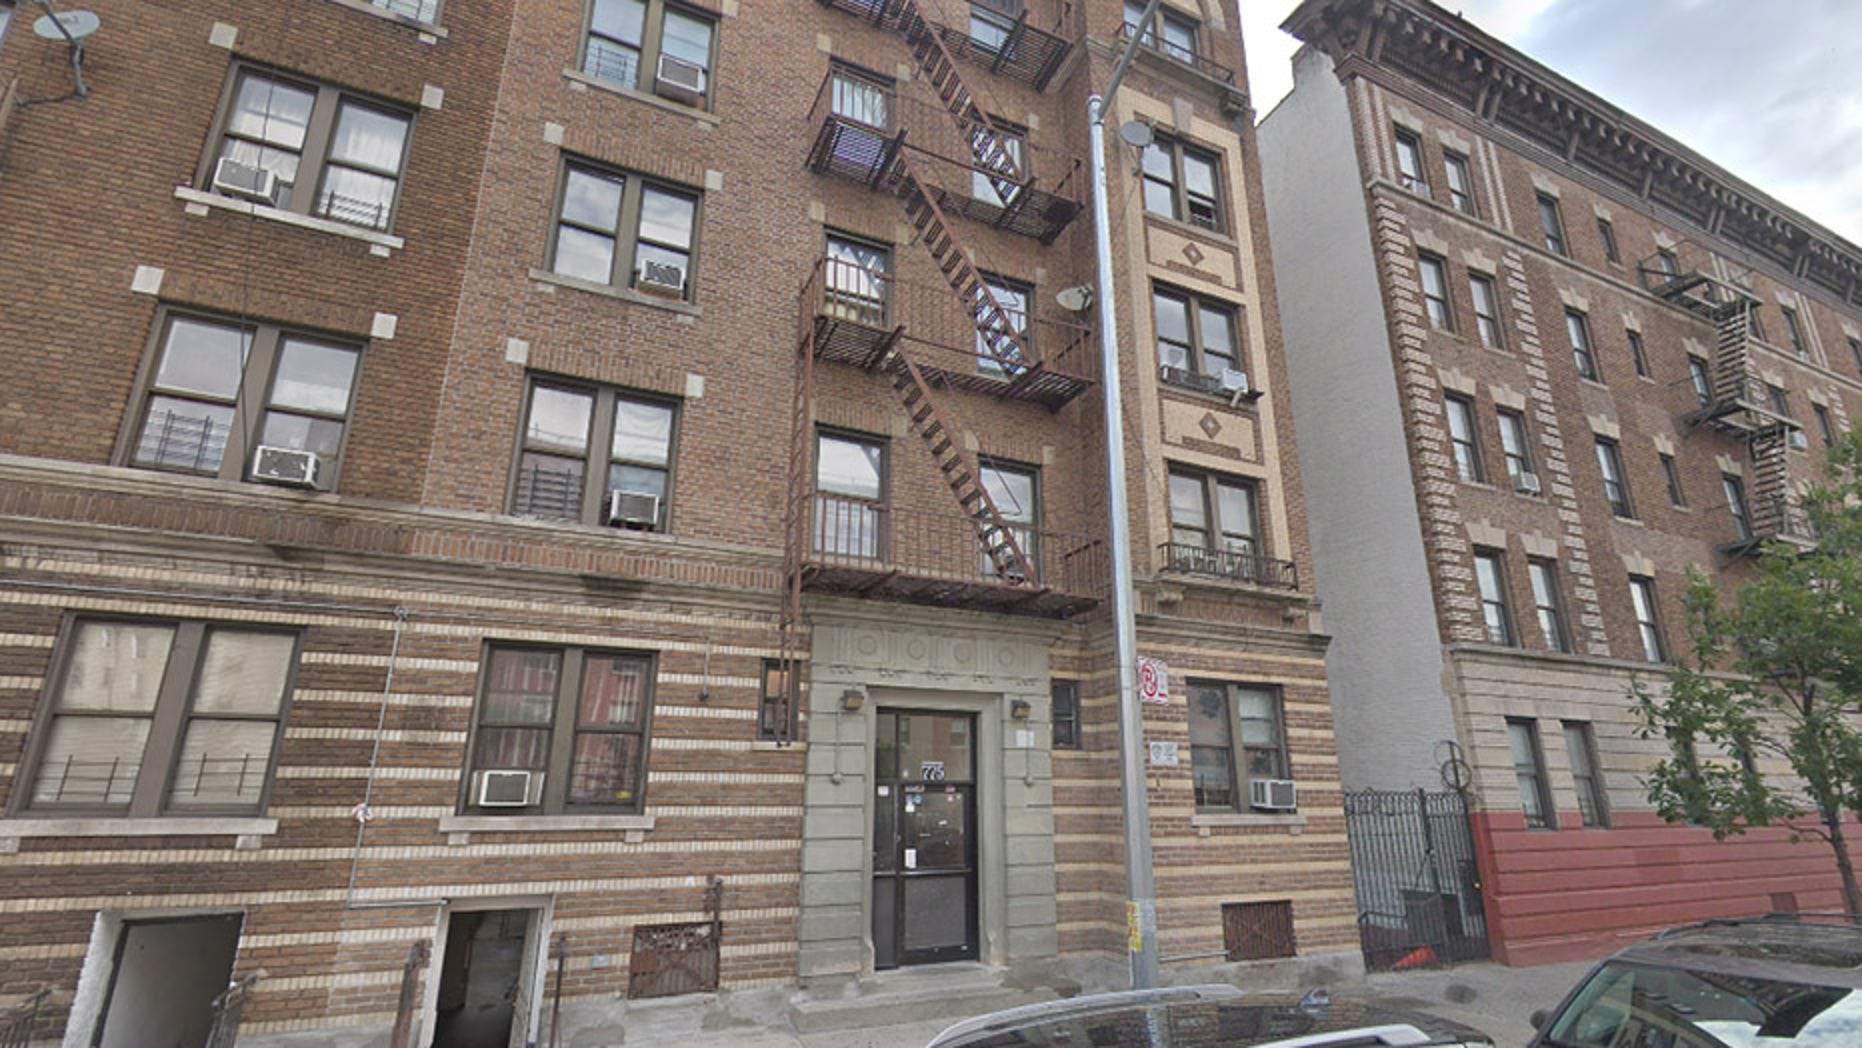 Marisol Ortiz and Alanche Del Orbe were found dead Sunday inside this New York City apartment building.